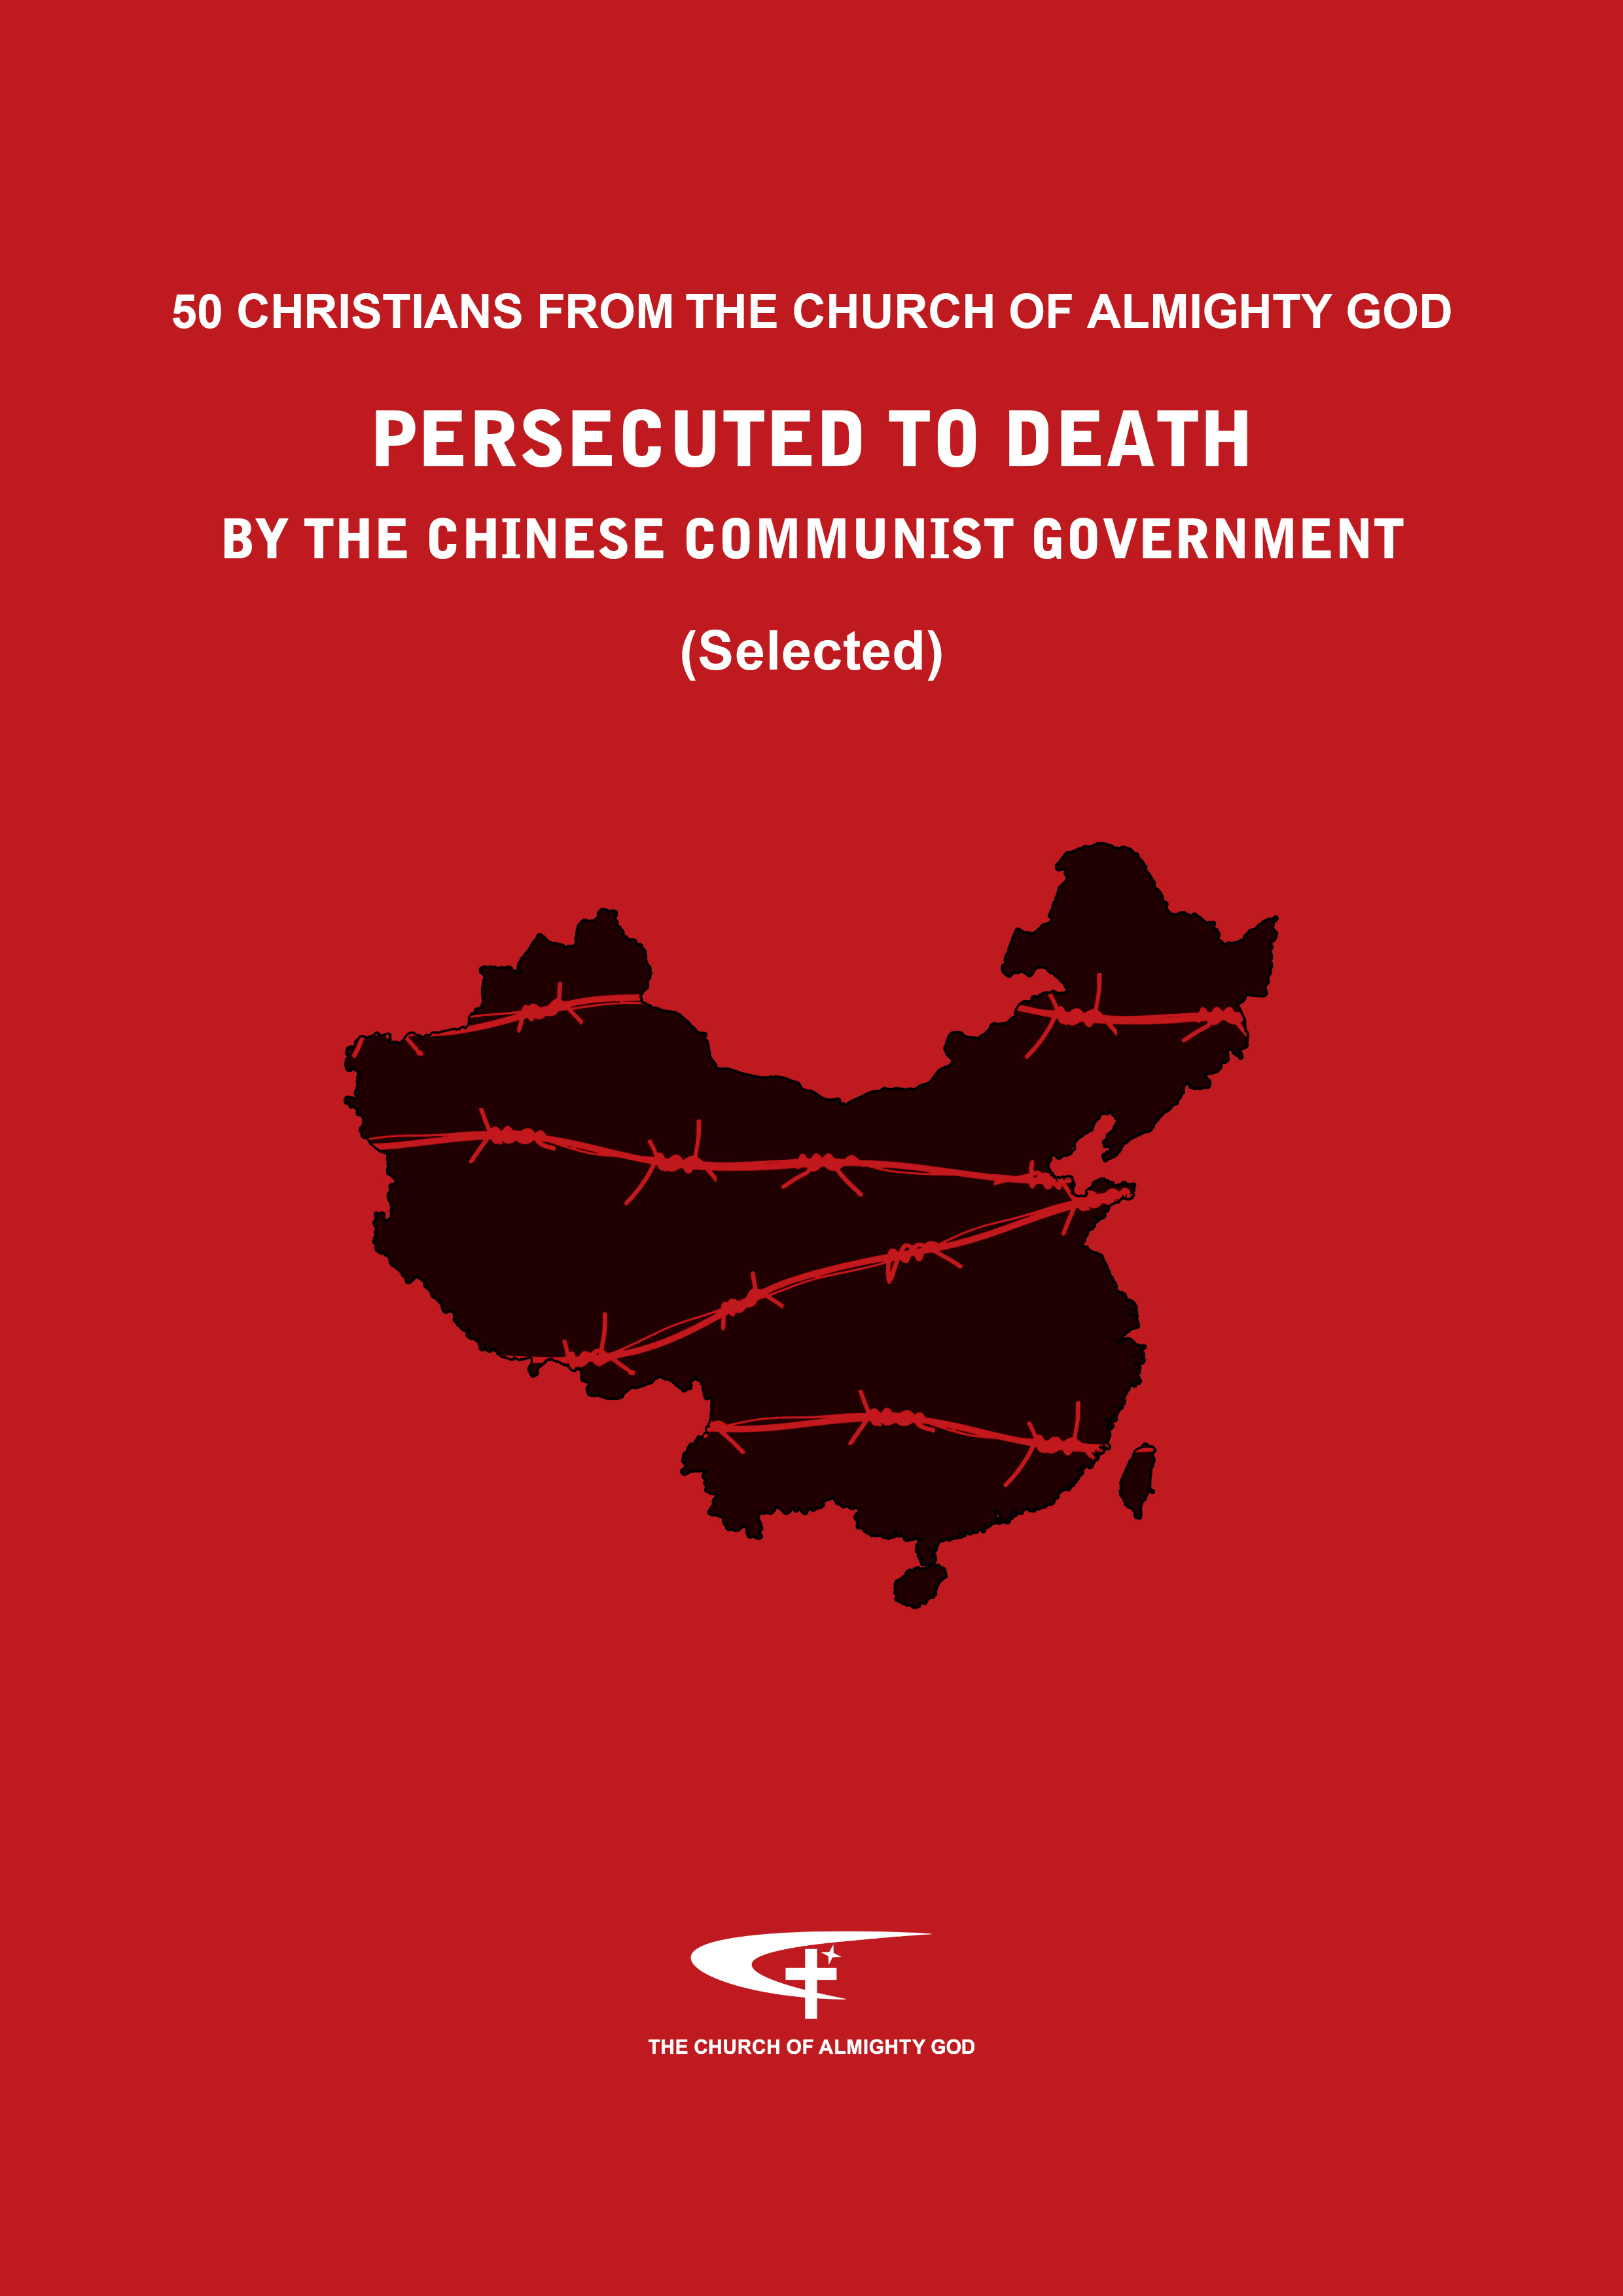 50 Christians From The Church of Almighty God Persecuted to Death by the Chinese Communist Government